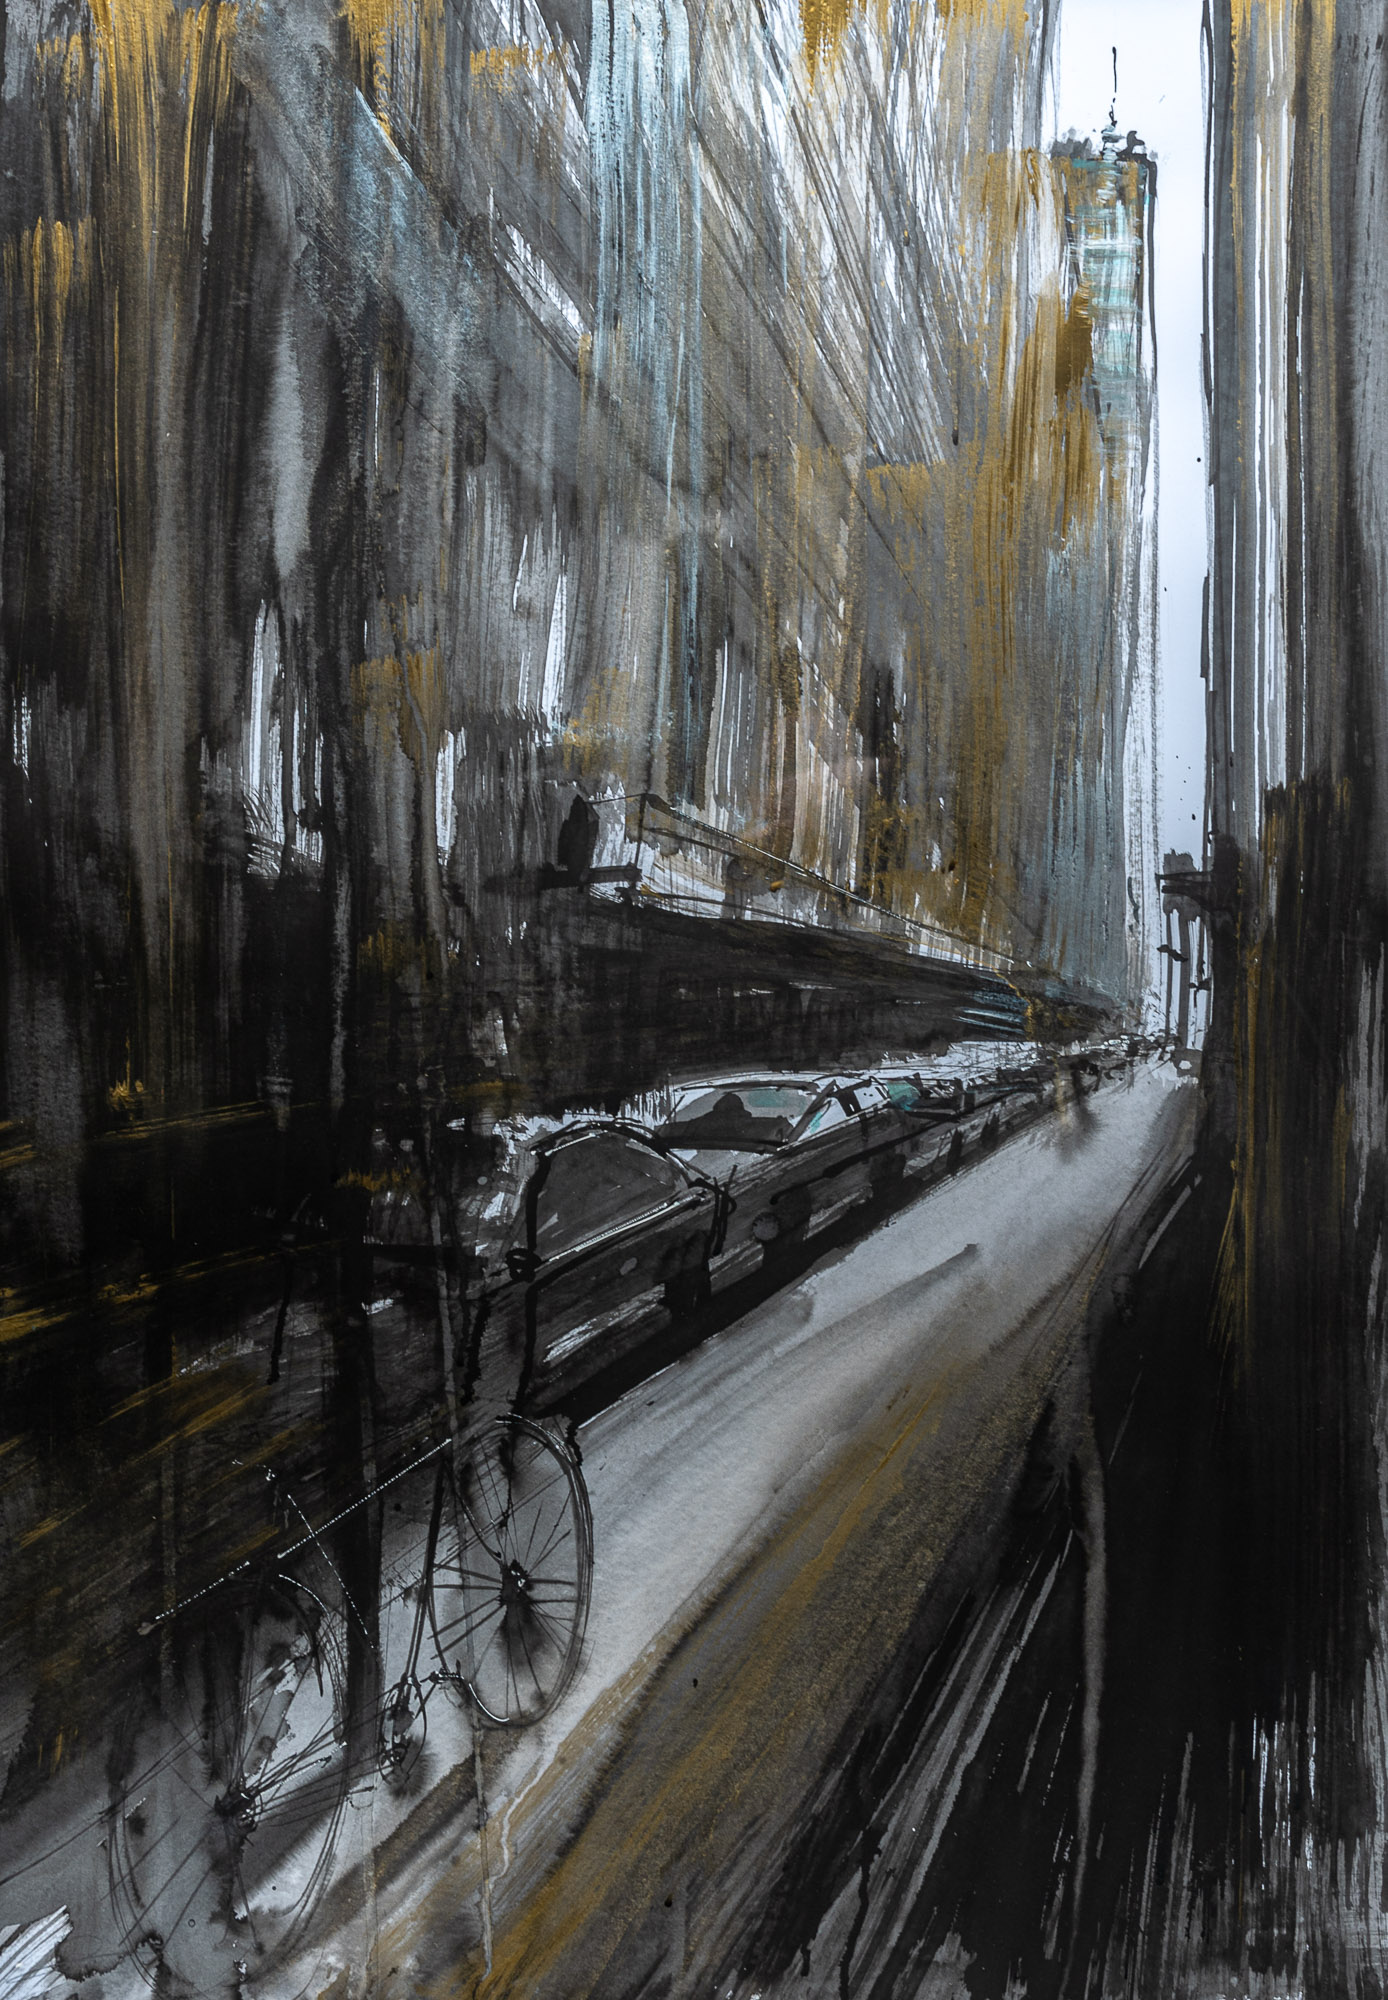 Where The Streets Have No Name - Original New York Watercolour Art Painting by UK Cityscape Artist Paul Kenton, from the Watercolour Collection